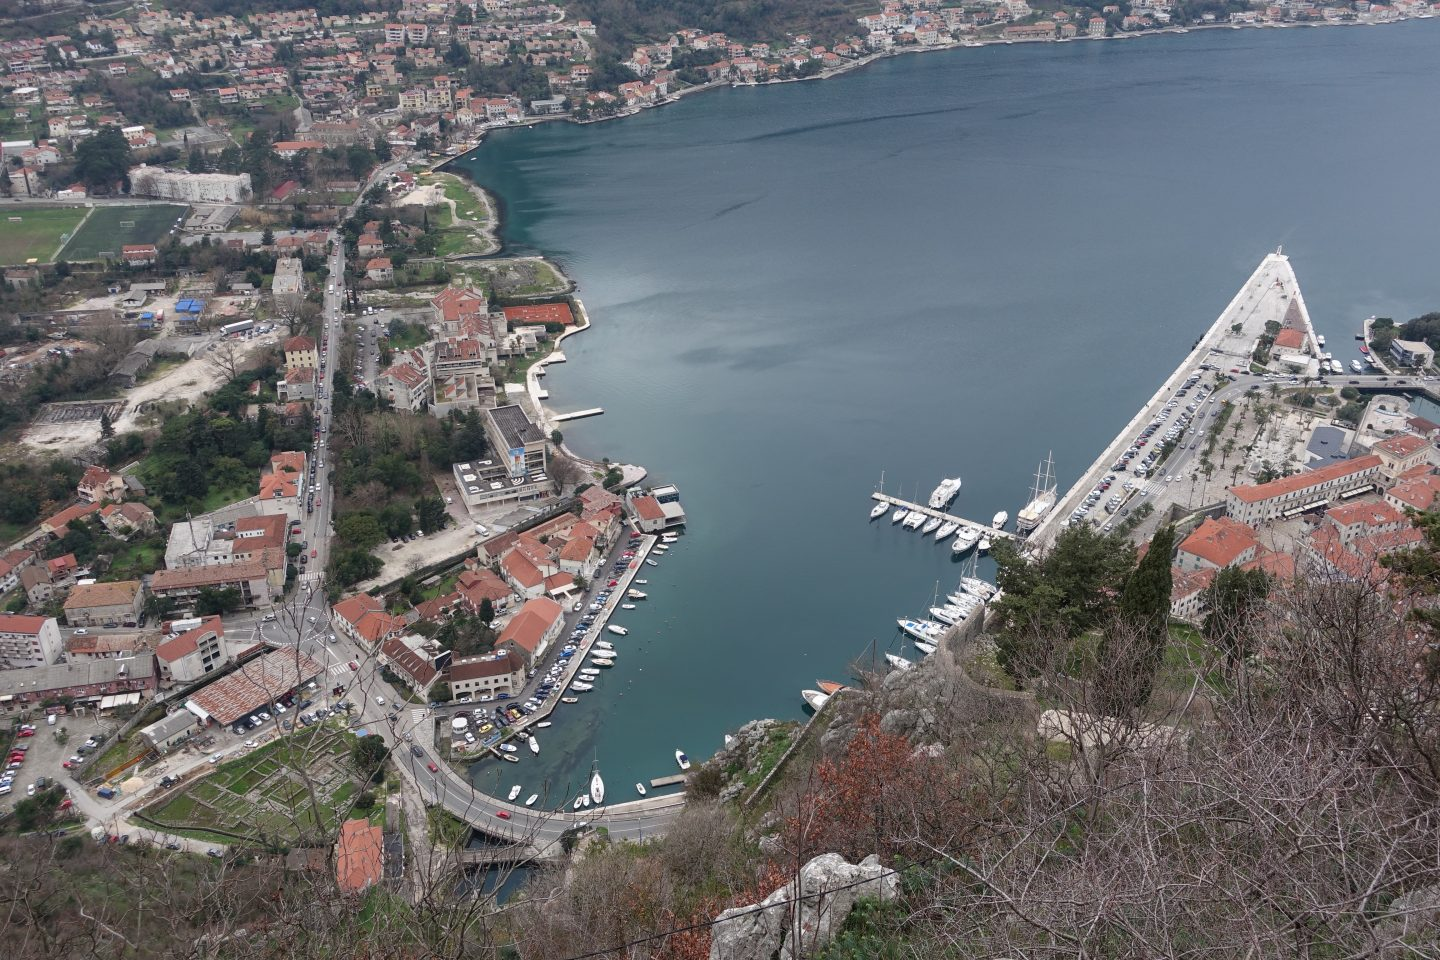 Kotor during the winter